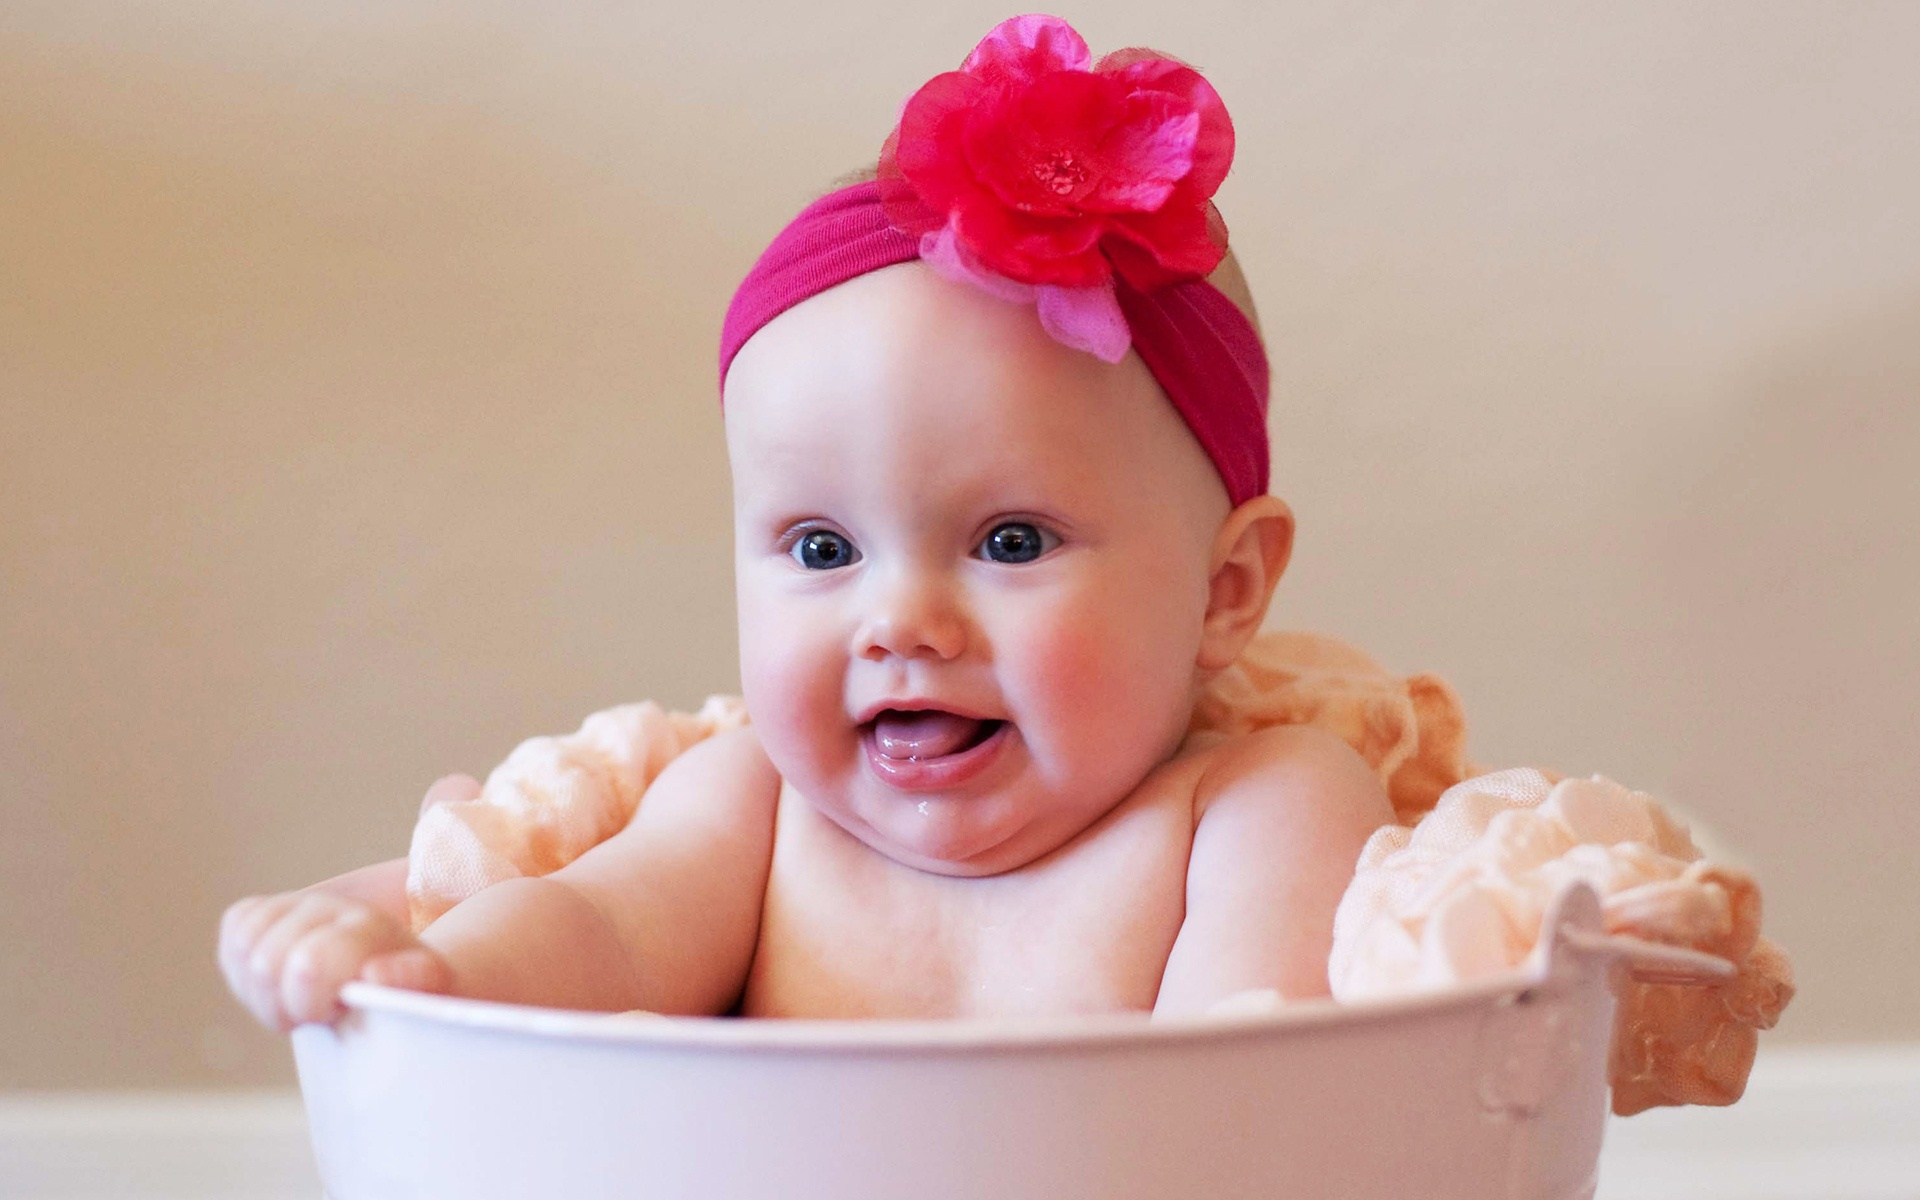 Baby Girl HD Wallpapers Images Pictures Pics And Photos. Wallpapers Wallpaper